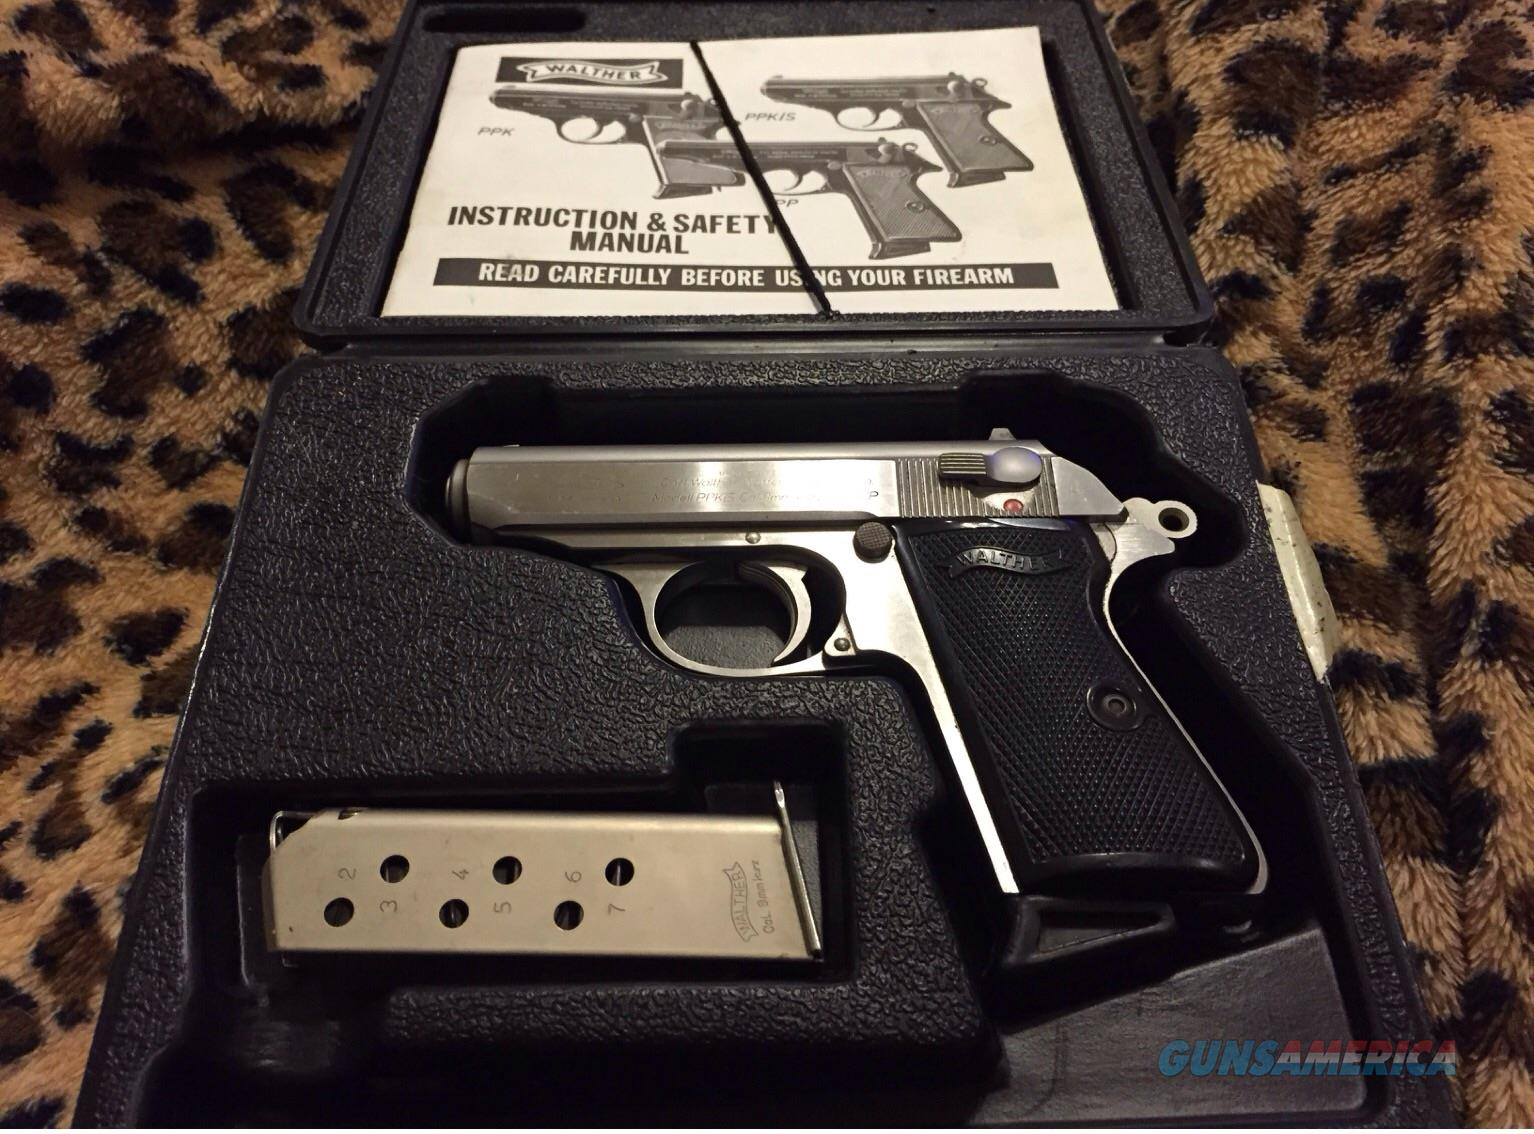 ppk walther manual s how to and user guide instructions u2022 rh taxibermuda co Walther PPK S Walther PPK 380 Auto